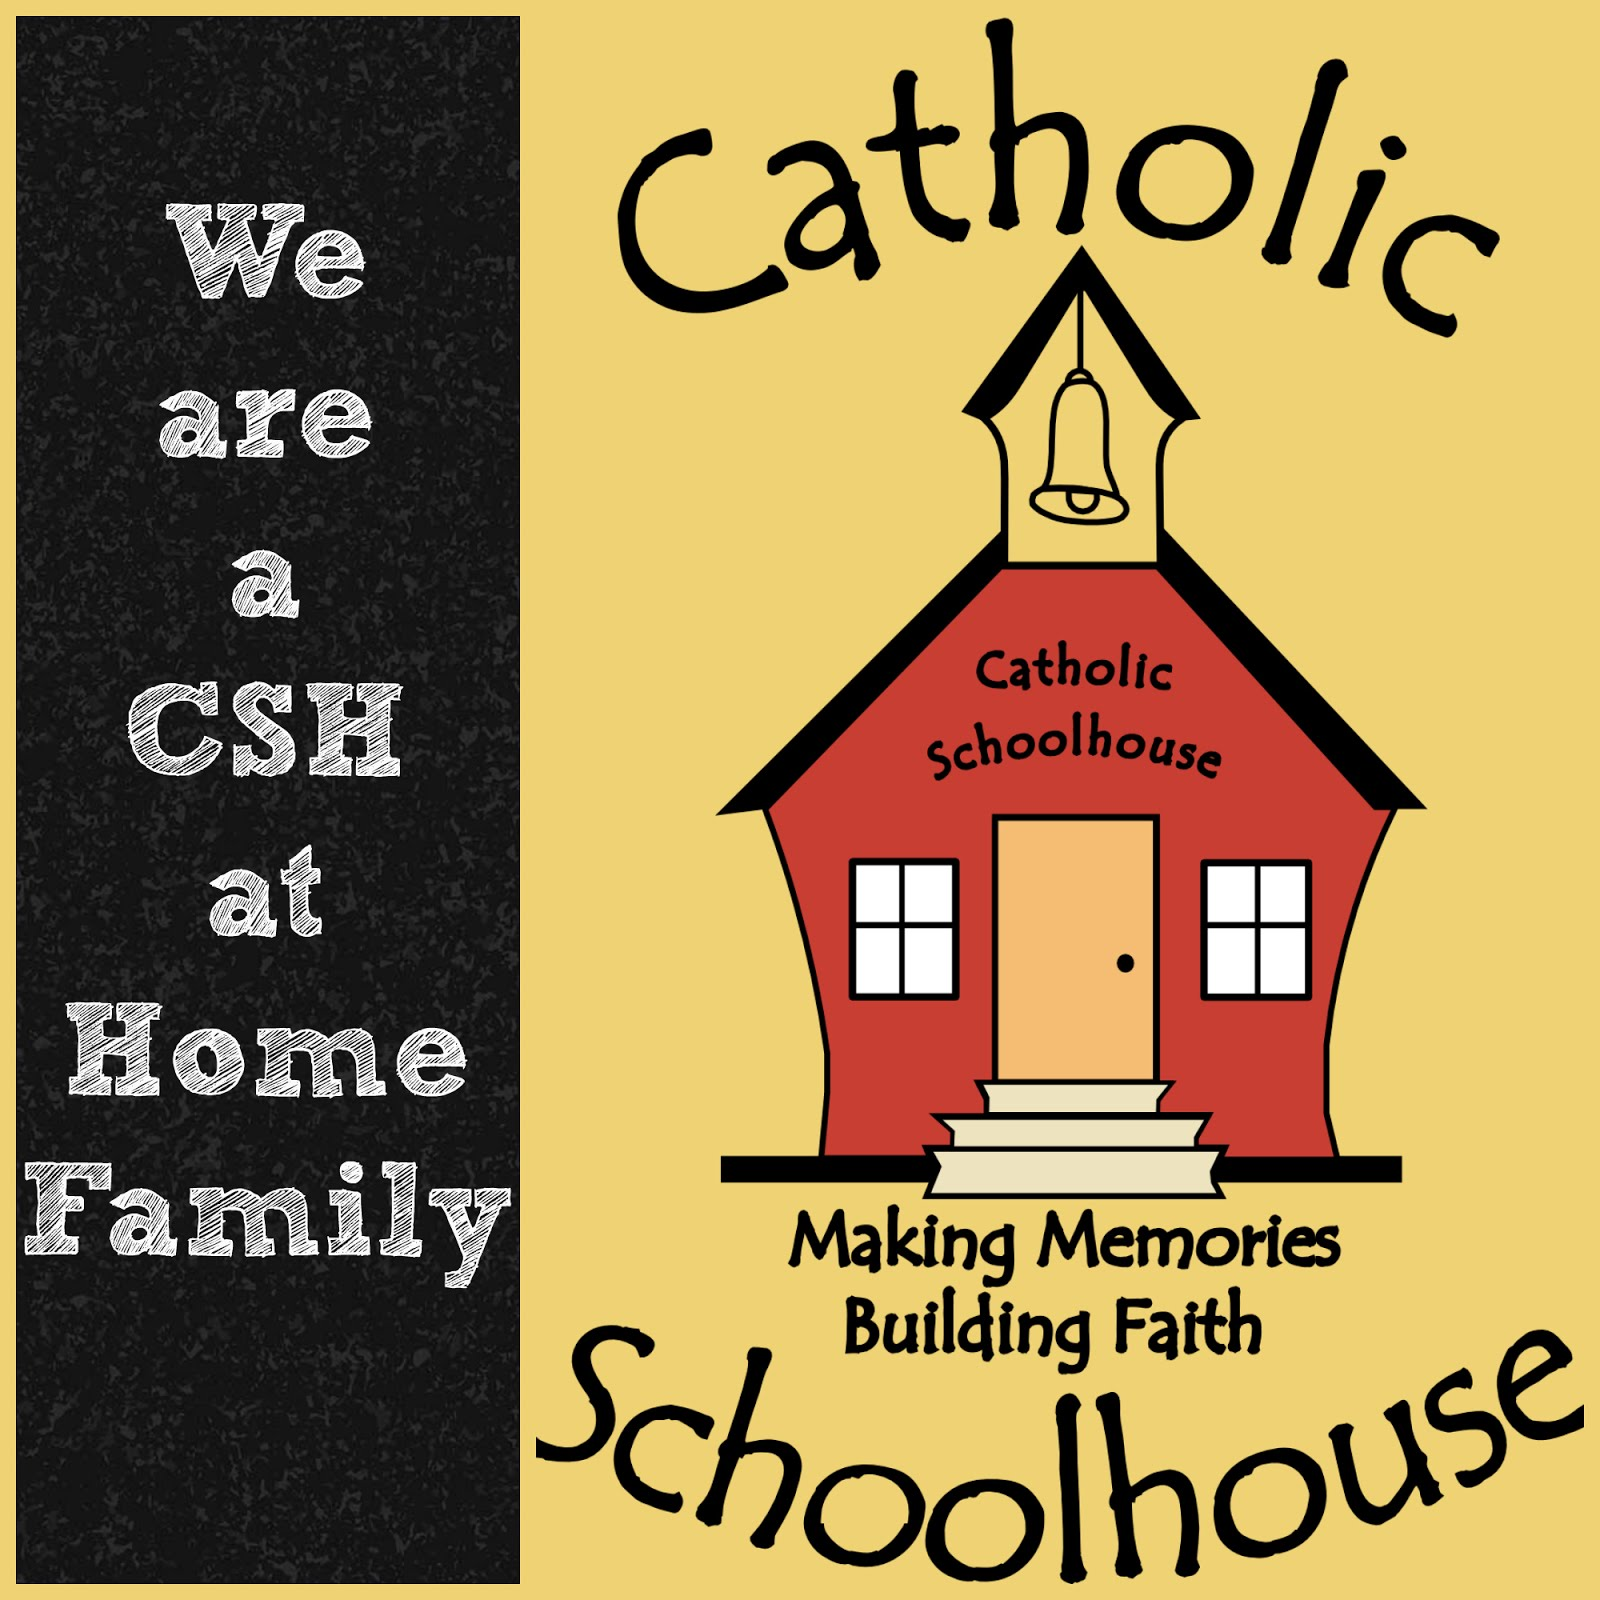 Catholic Schoolhouse @ Home Family